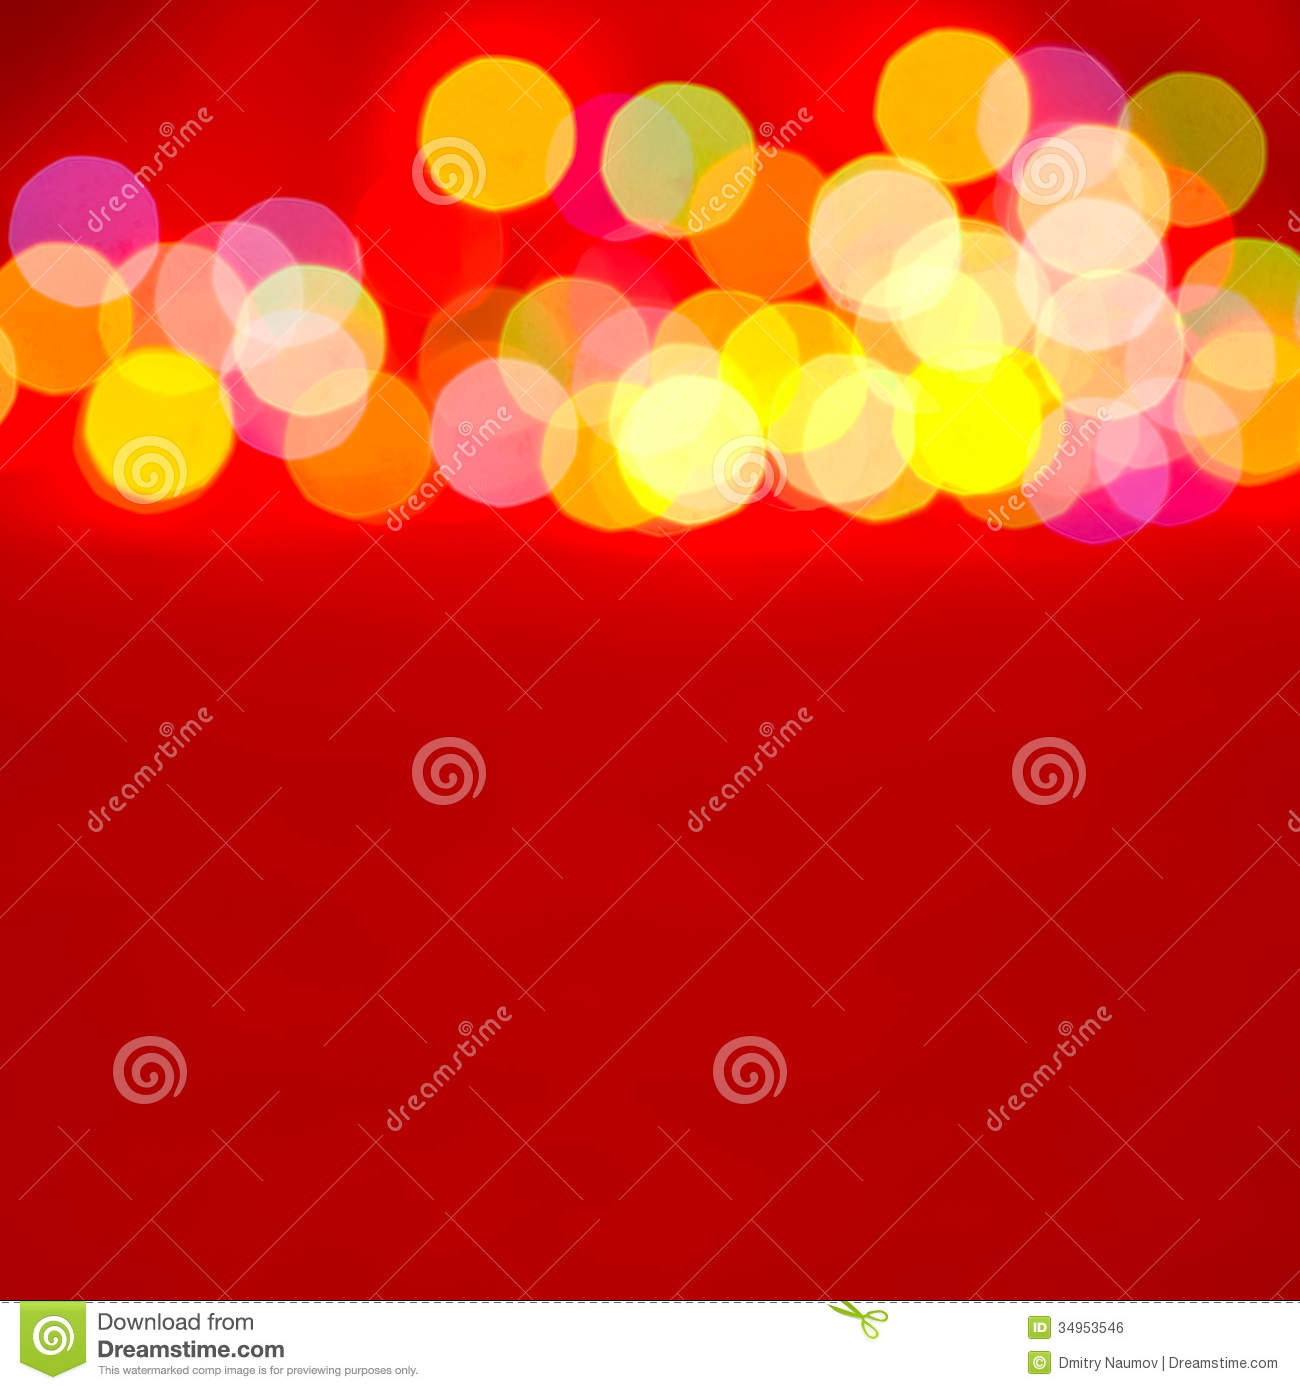 Blurred Lights Royalty Free Stock Image - Image: 34953546